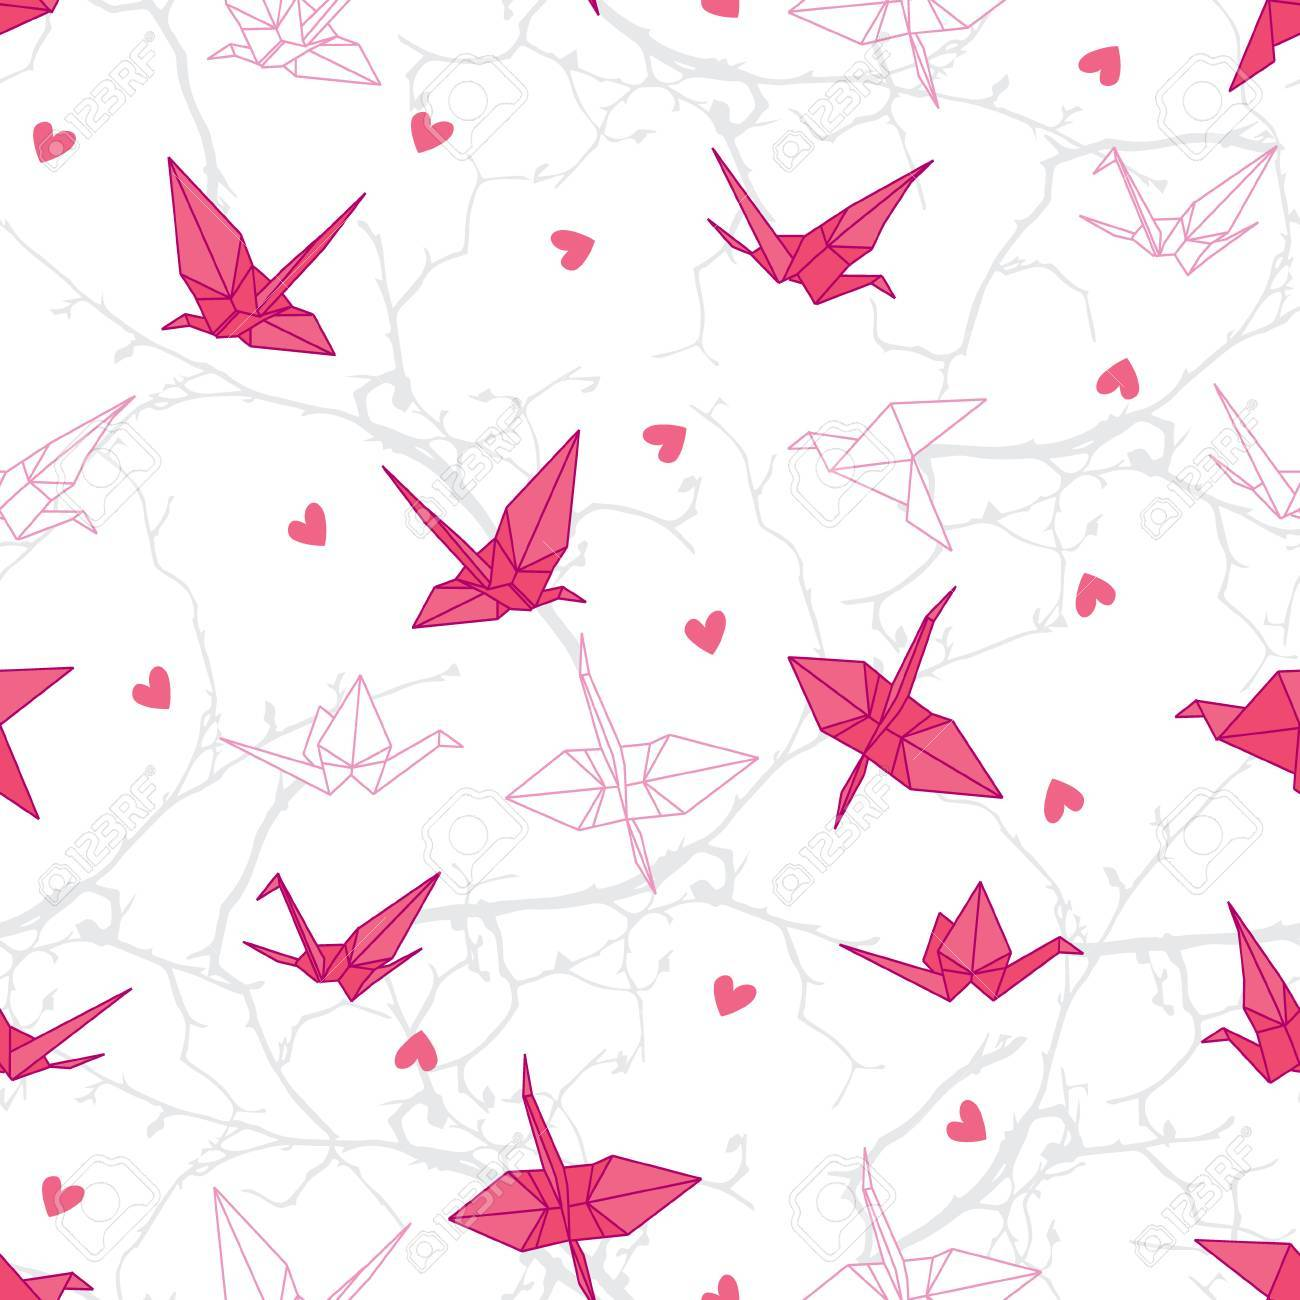 picture regarding Origami Crane Instructions Printable identified as Origami cranes within take pleasure in upon the branches seamless vector print